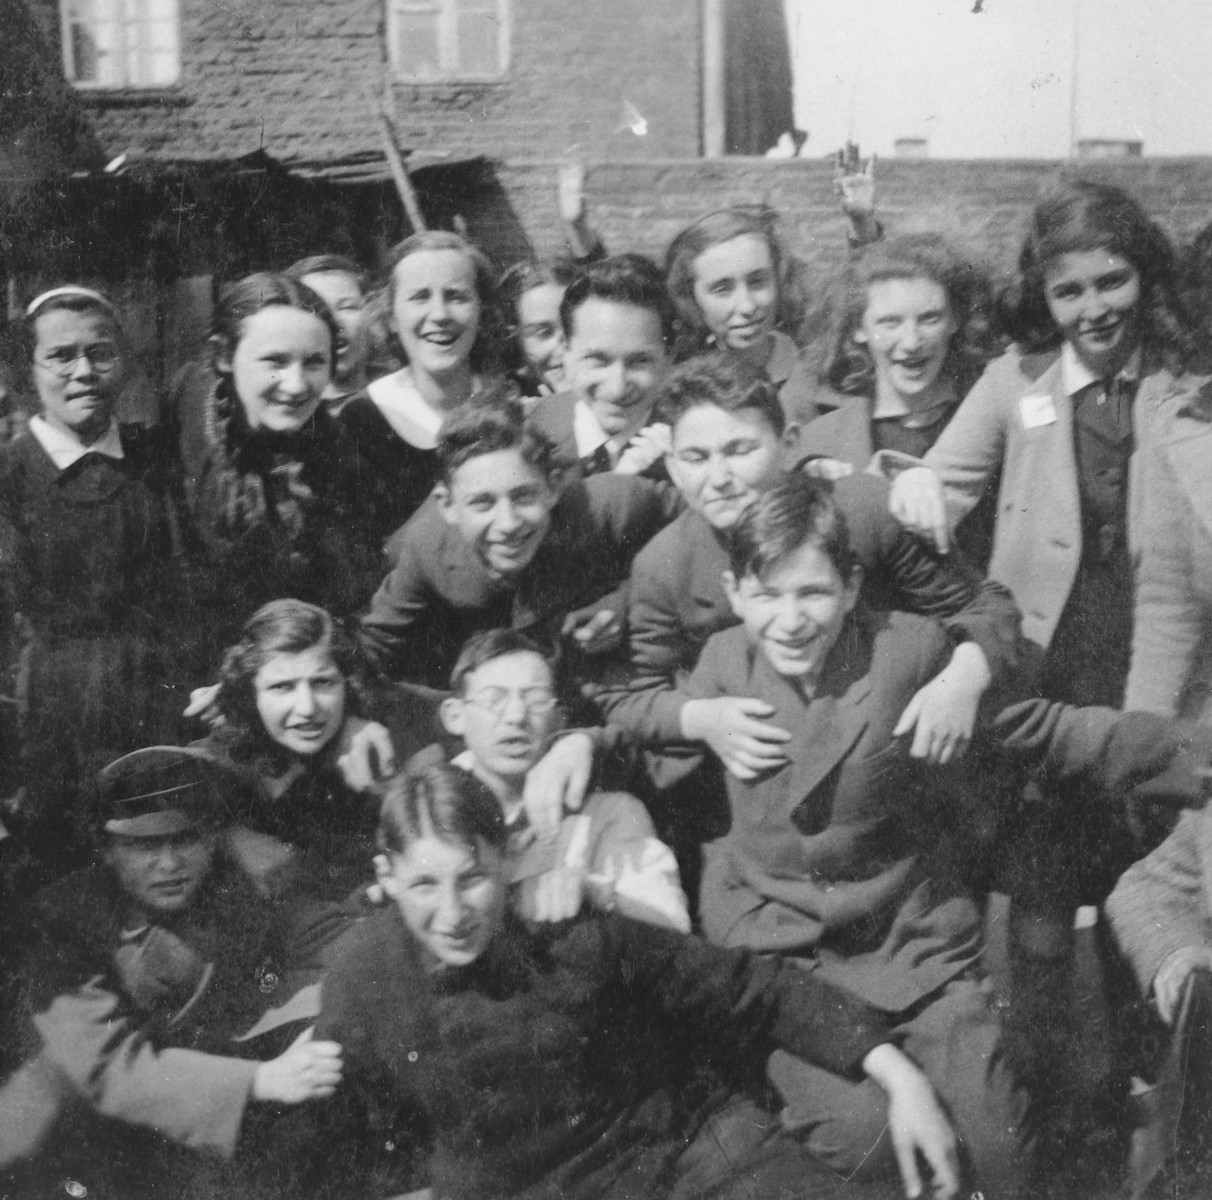 Group portrait of Jewish students of the Schwabes Hebrew gymnasium in Kovno, Lithuania.  Among those pictured is Dov Levin (center wearing glasses).